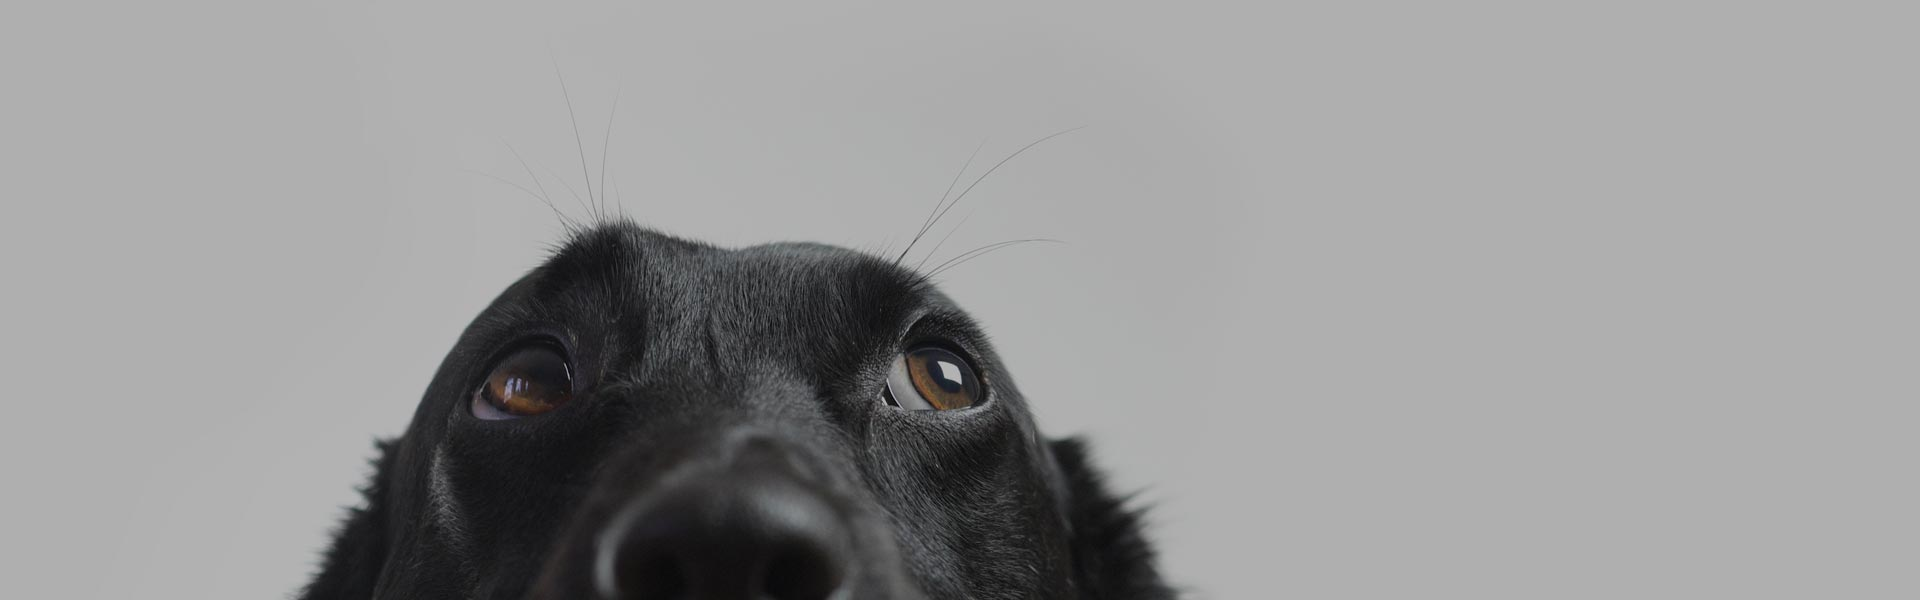 black dog from nose up looking upwards on grey background